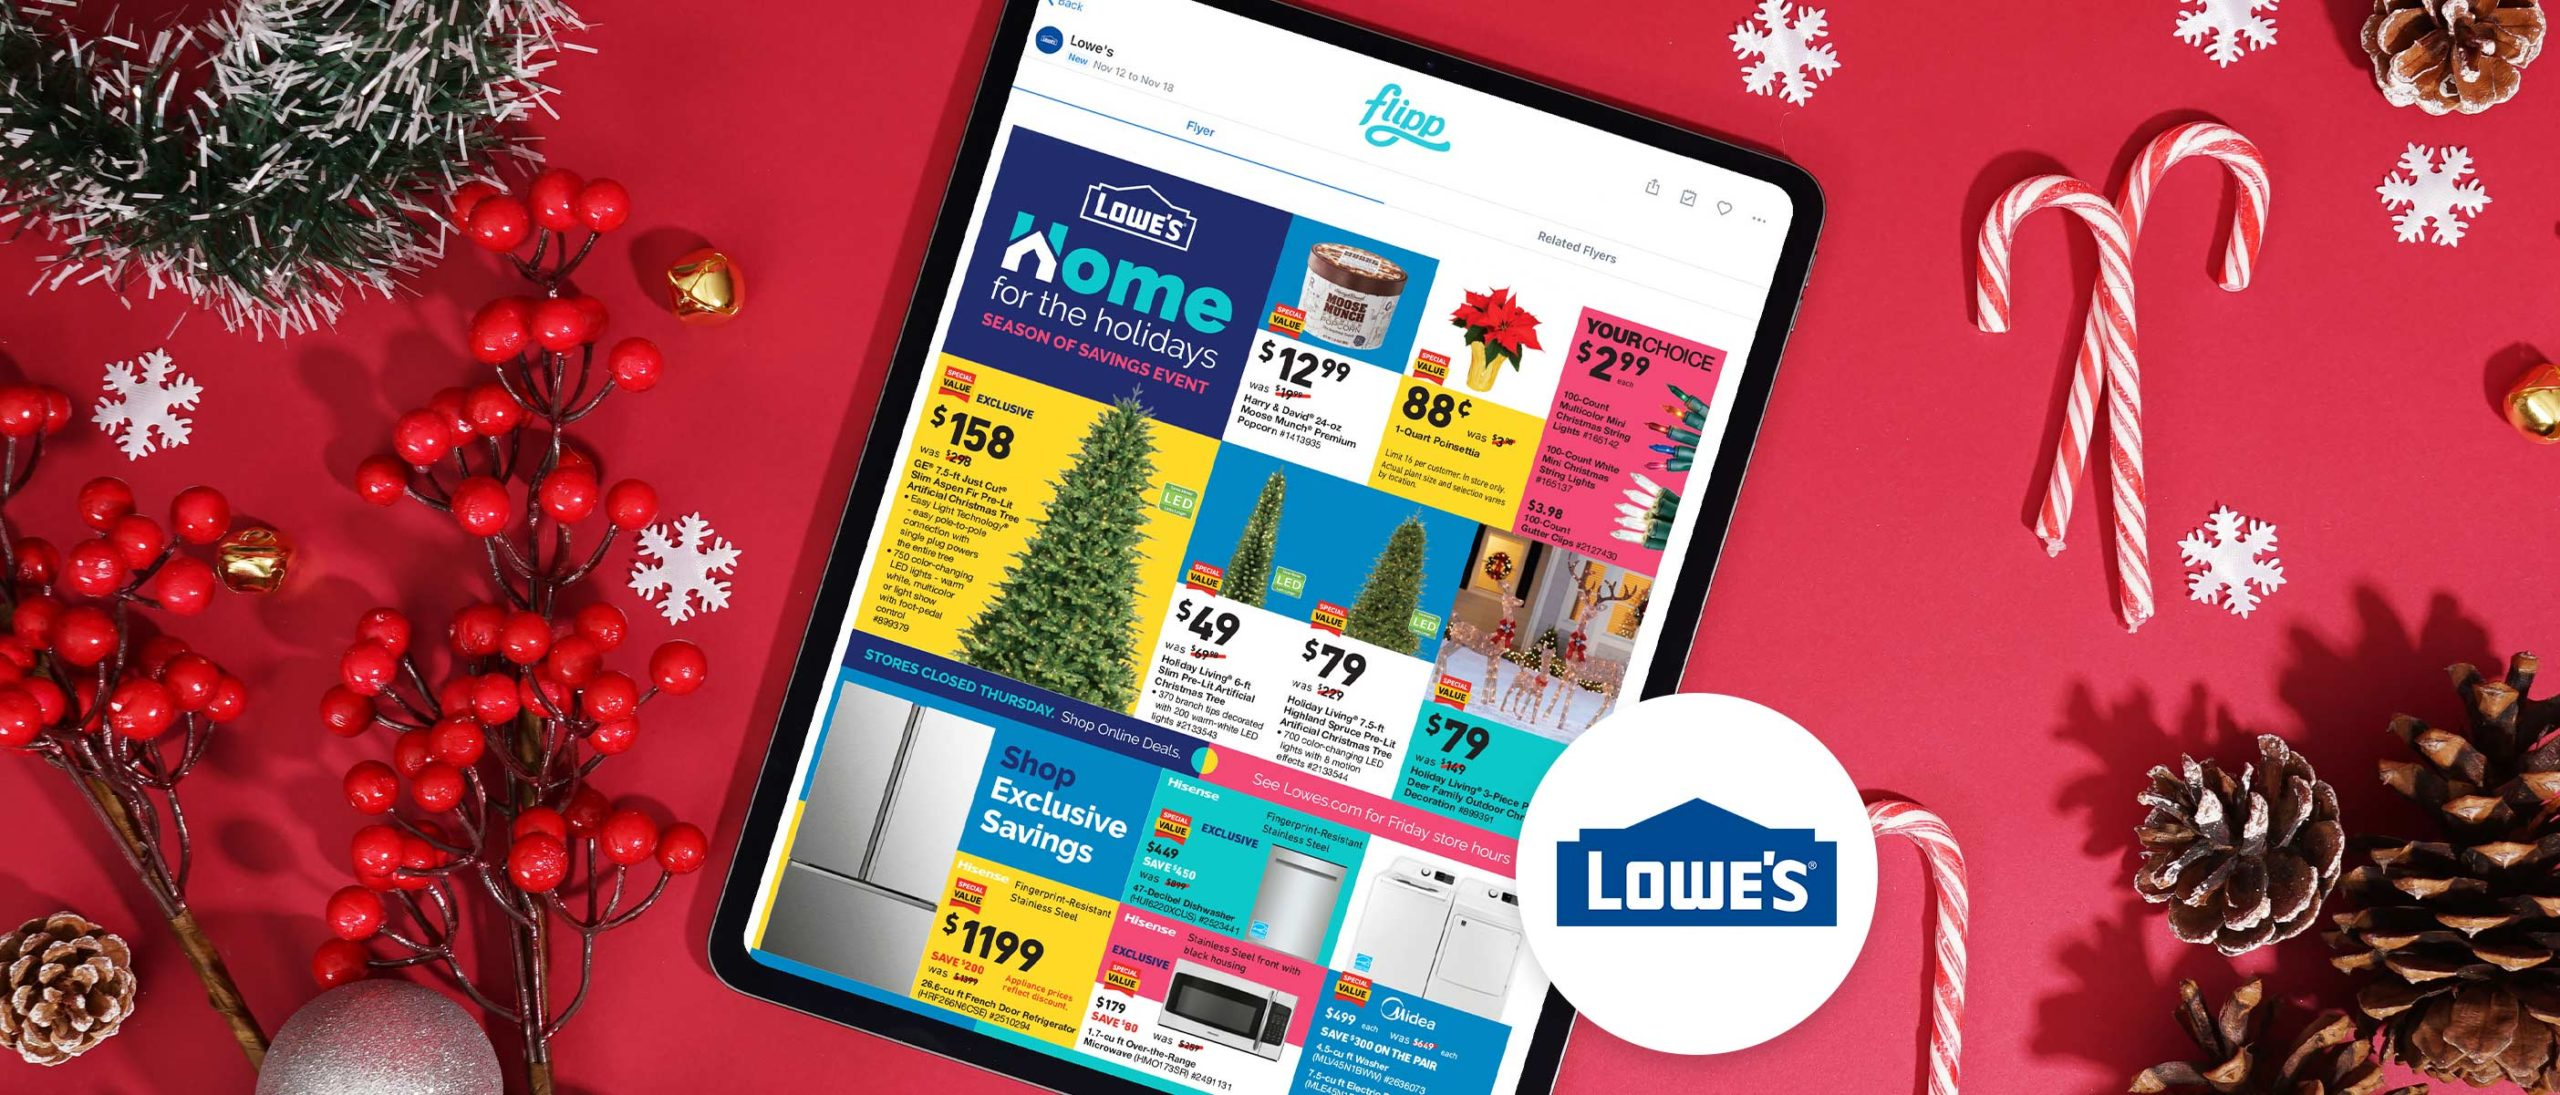 Revamp Your Home for the Holidays With Lowe's Best Deals